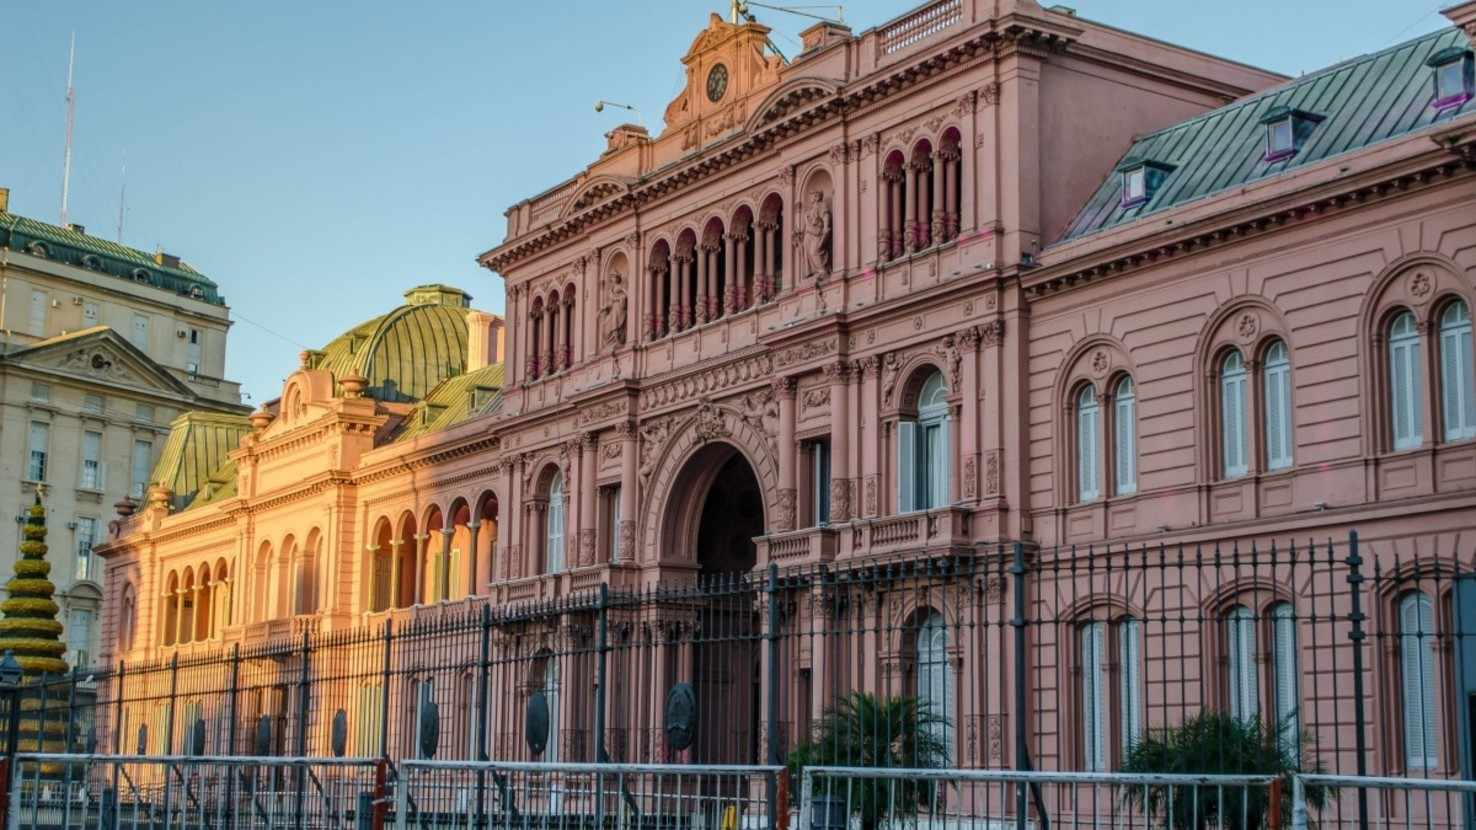 Large house government house casa rosada argentina plaza de mayo buenos aires 914385